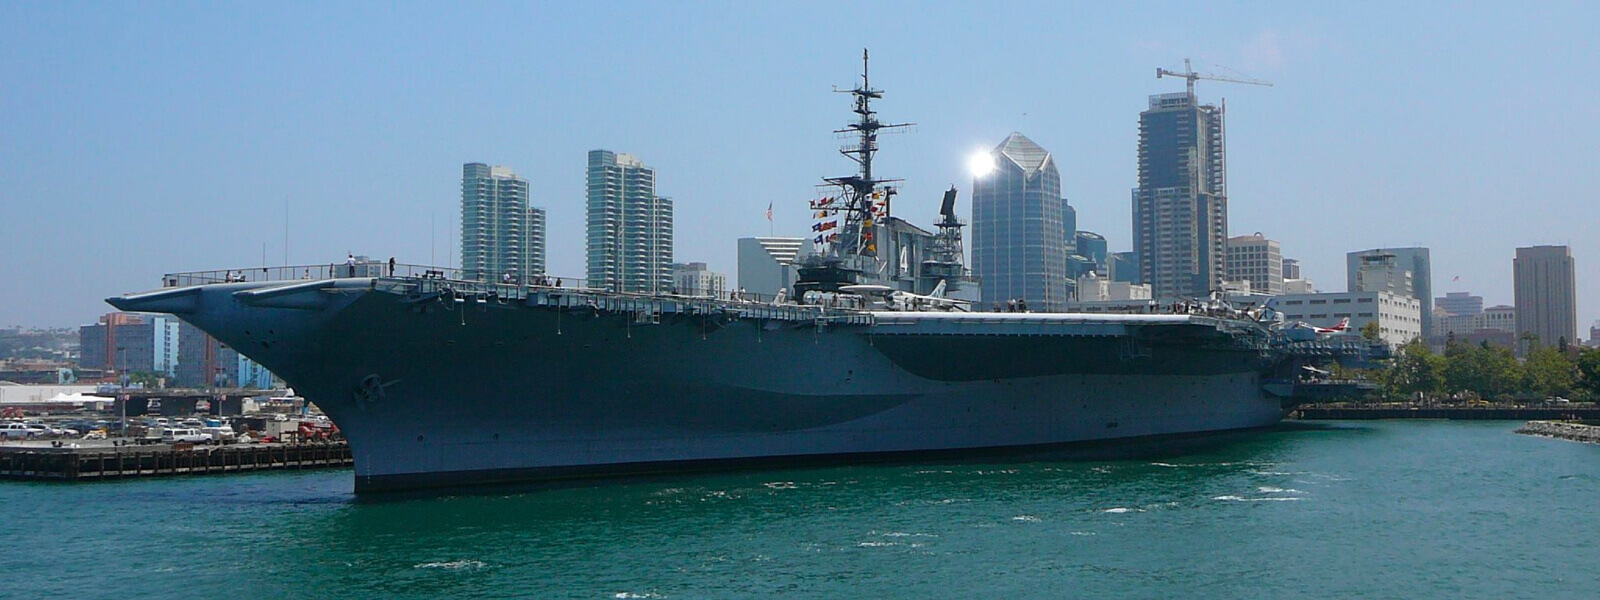 YachtLife's top Yachting Activities in San Diego - The USS Midway